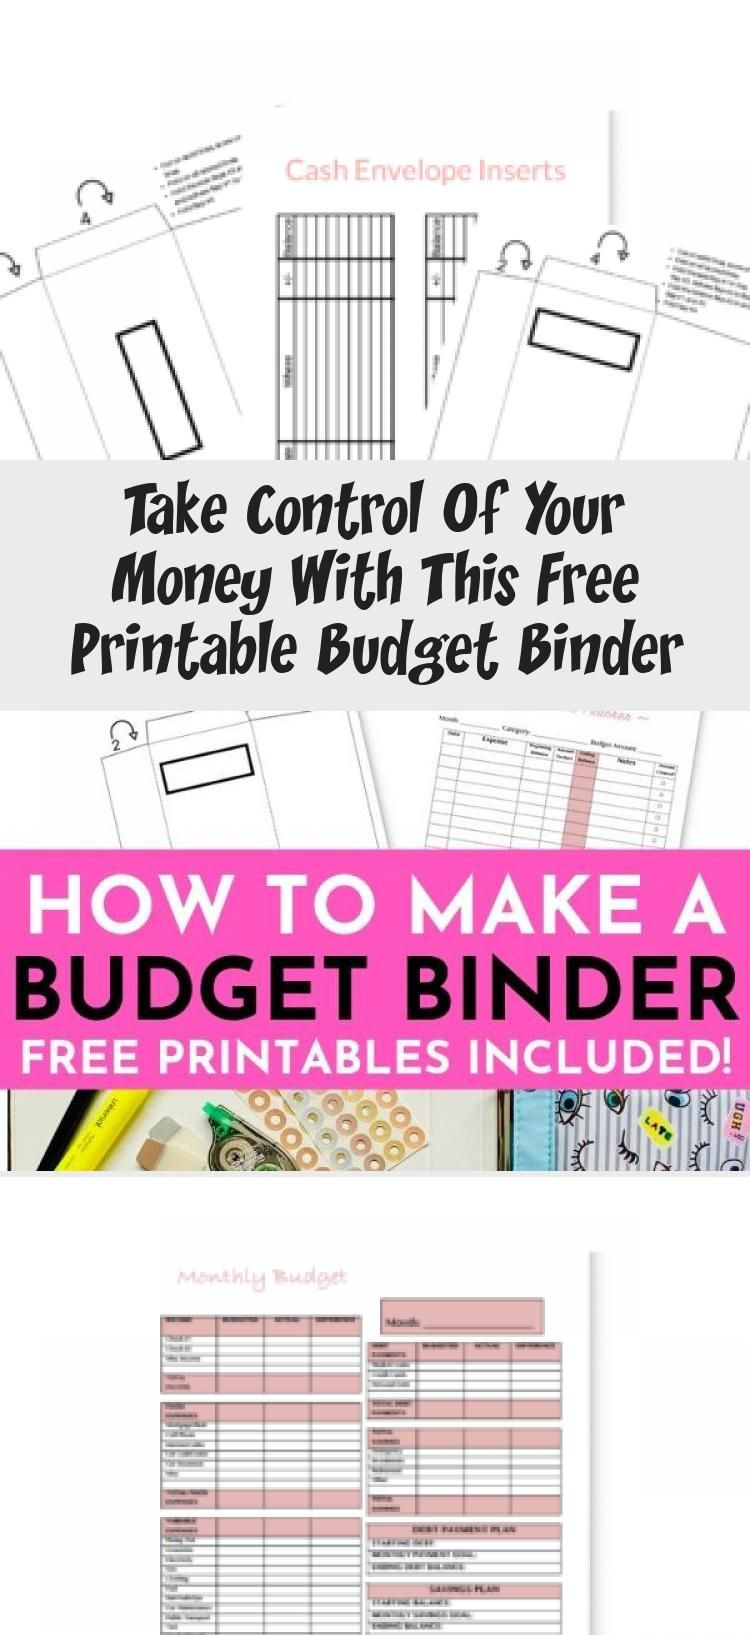 Get your free budget binder today with these budget